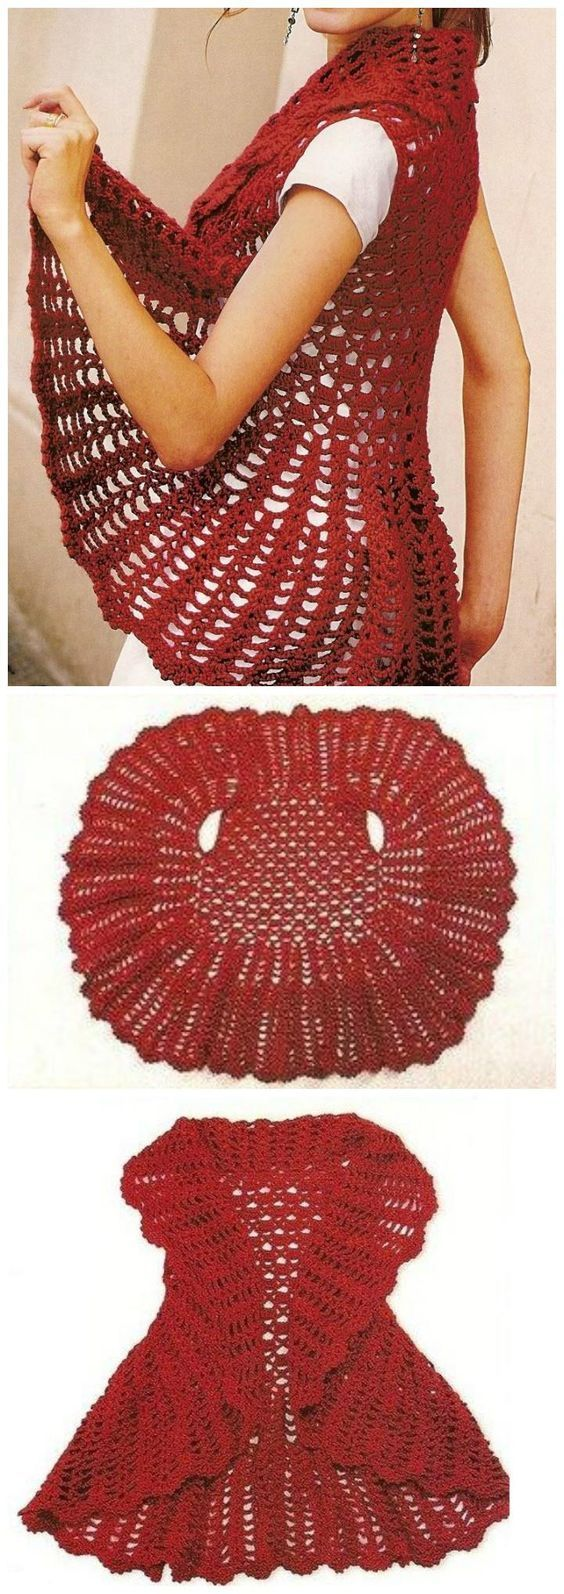 12 Free Crochet Patterns for Circular Vest Jacket | Häckeln ...